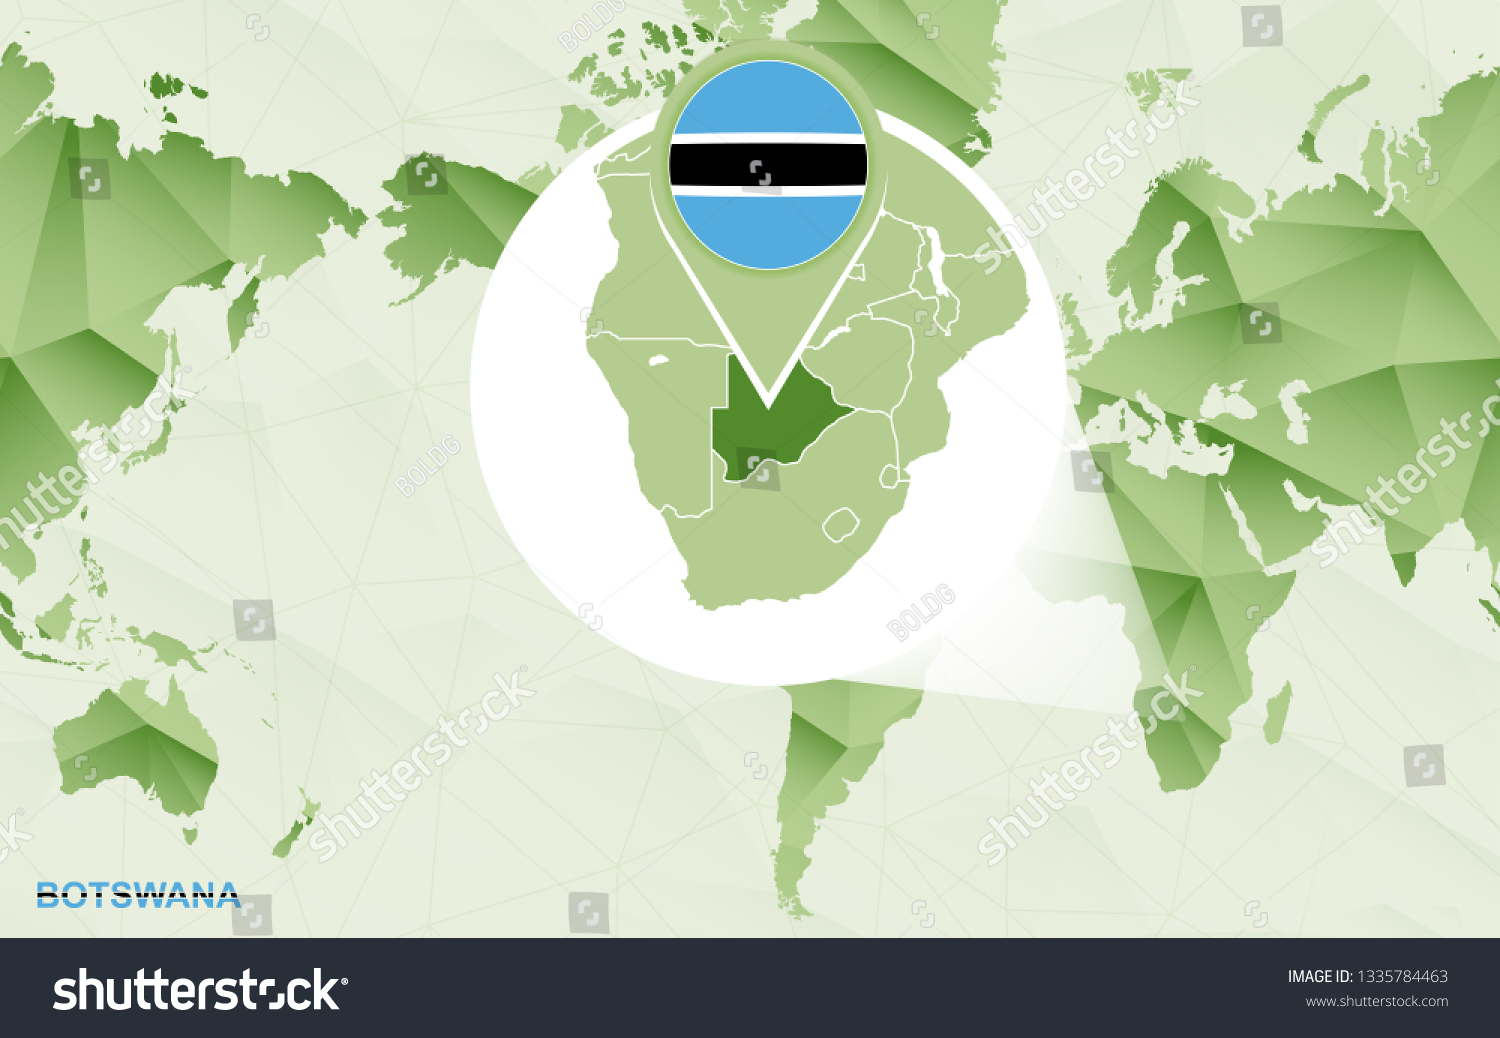 Picture of: America Centric World Map Magnified Botswana Stock Vector Royalty Free 1335784463